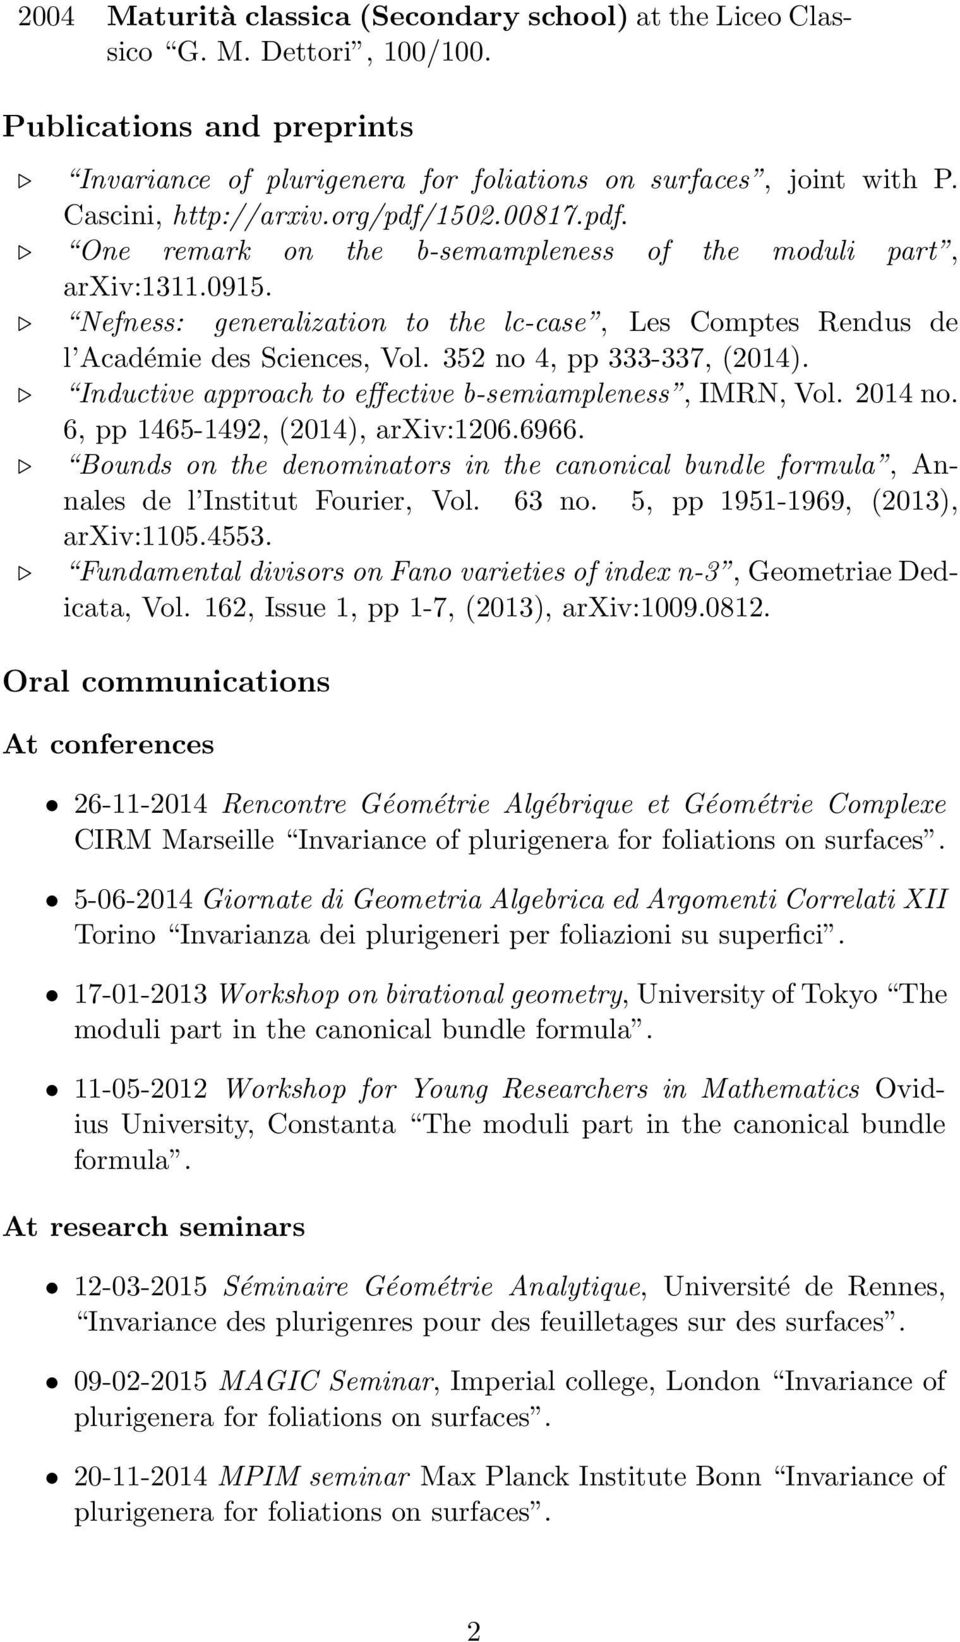 Nefness: generalization to the lc-case, Les Comptes Rendus de l Académie des Sciences, Vol. 352 no 4, pp 333-337, (2014). Inductive approach to effective b-semiampleness, IMRN, Vol. 2014 no.